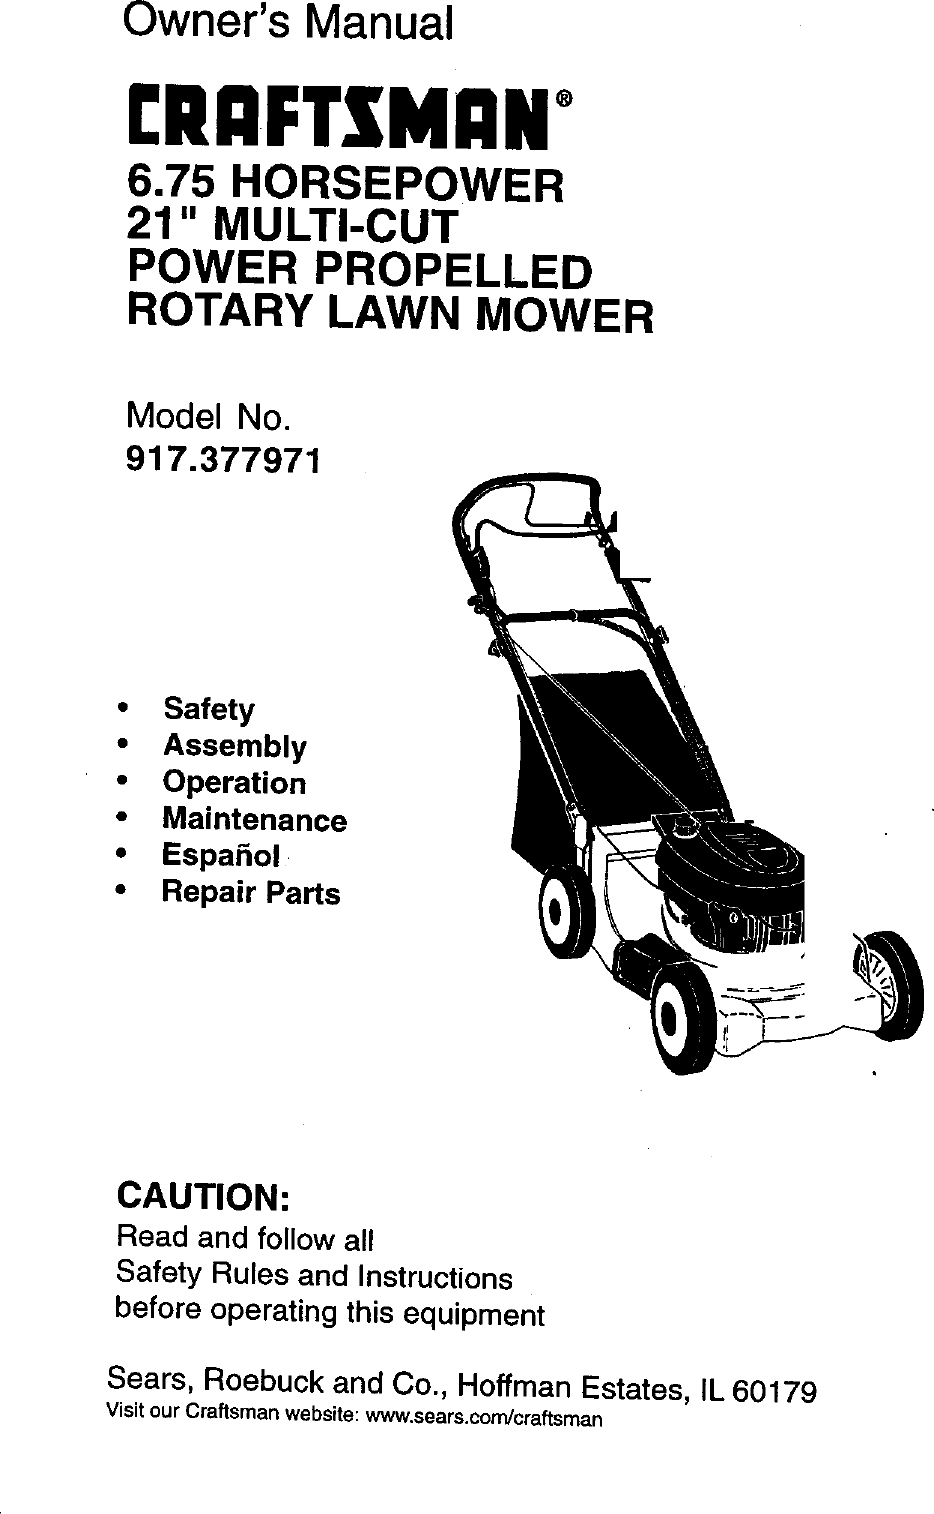 Craftsman 917377971 User Manual 6.75HP 21 ROTARY LAWN